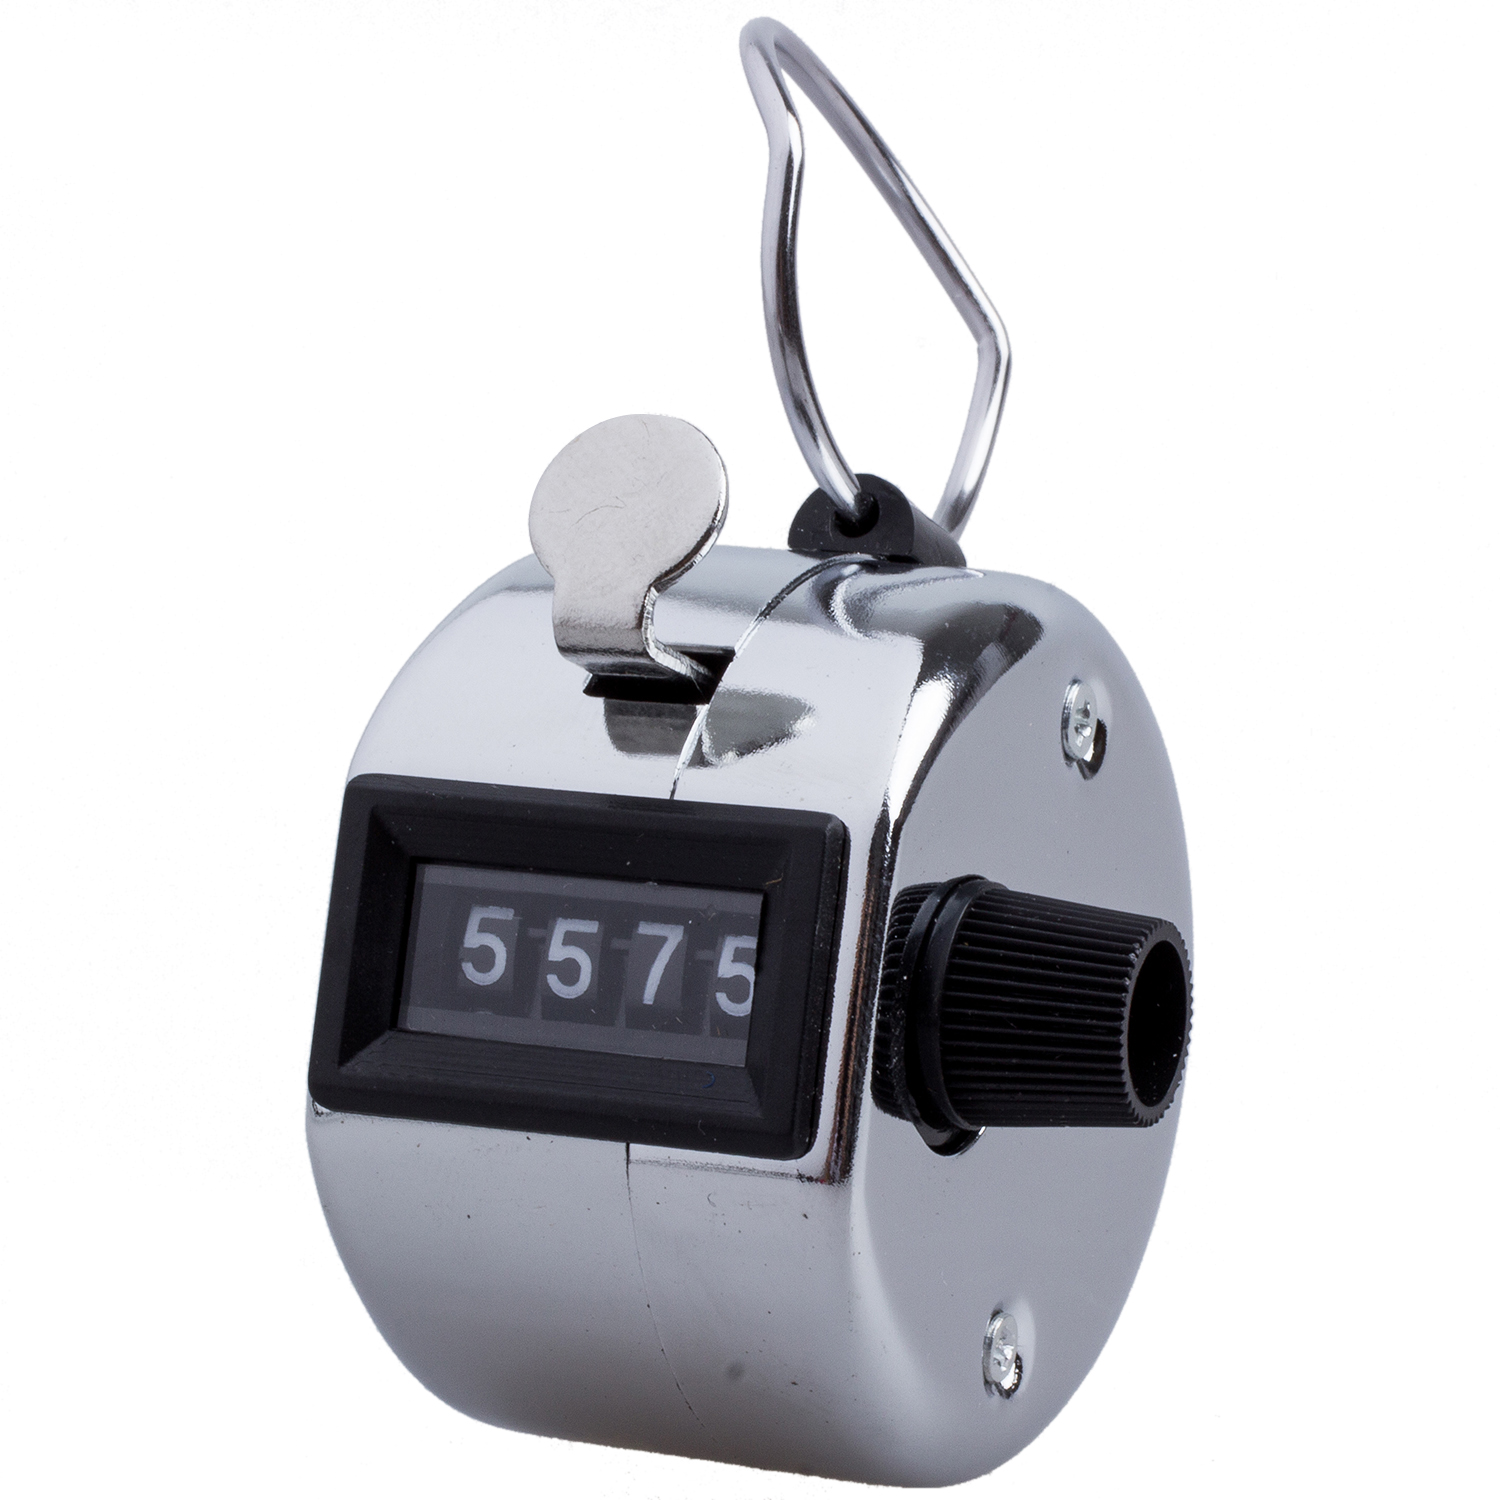 4 Digit Number Clicker Golf Hand Tally Click Counter Silver